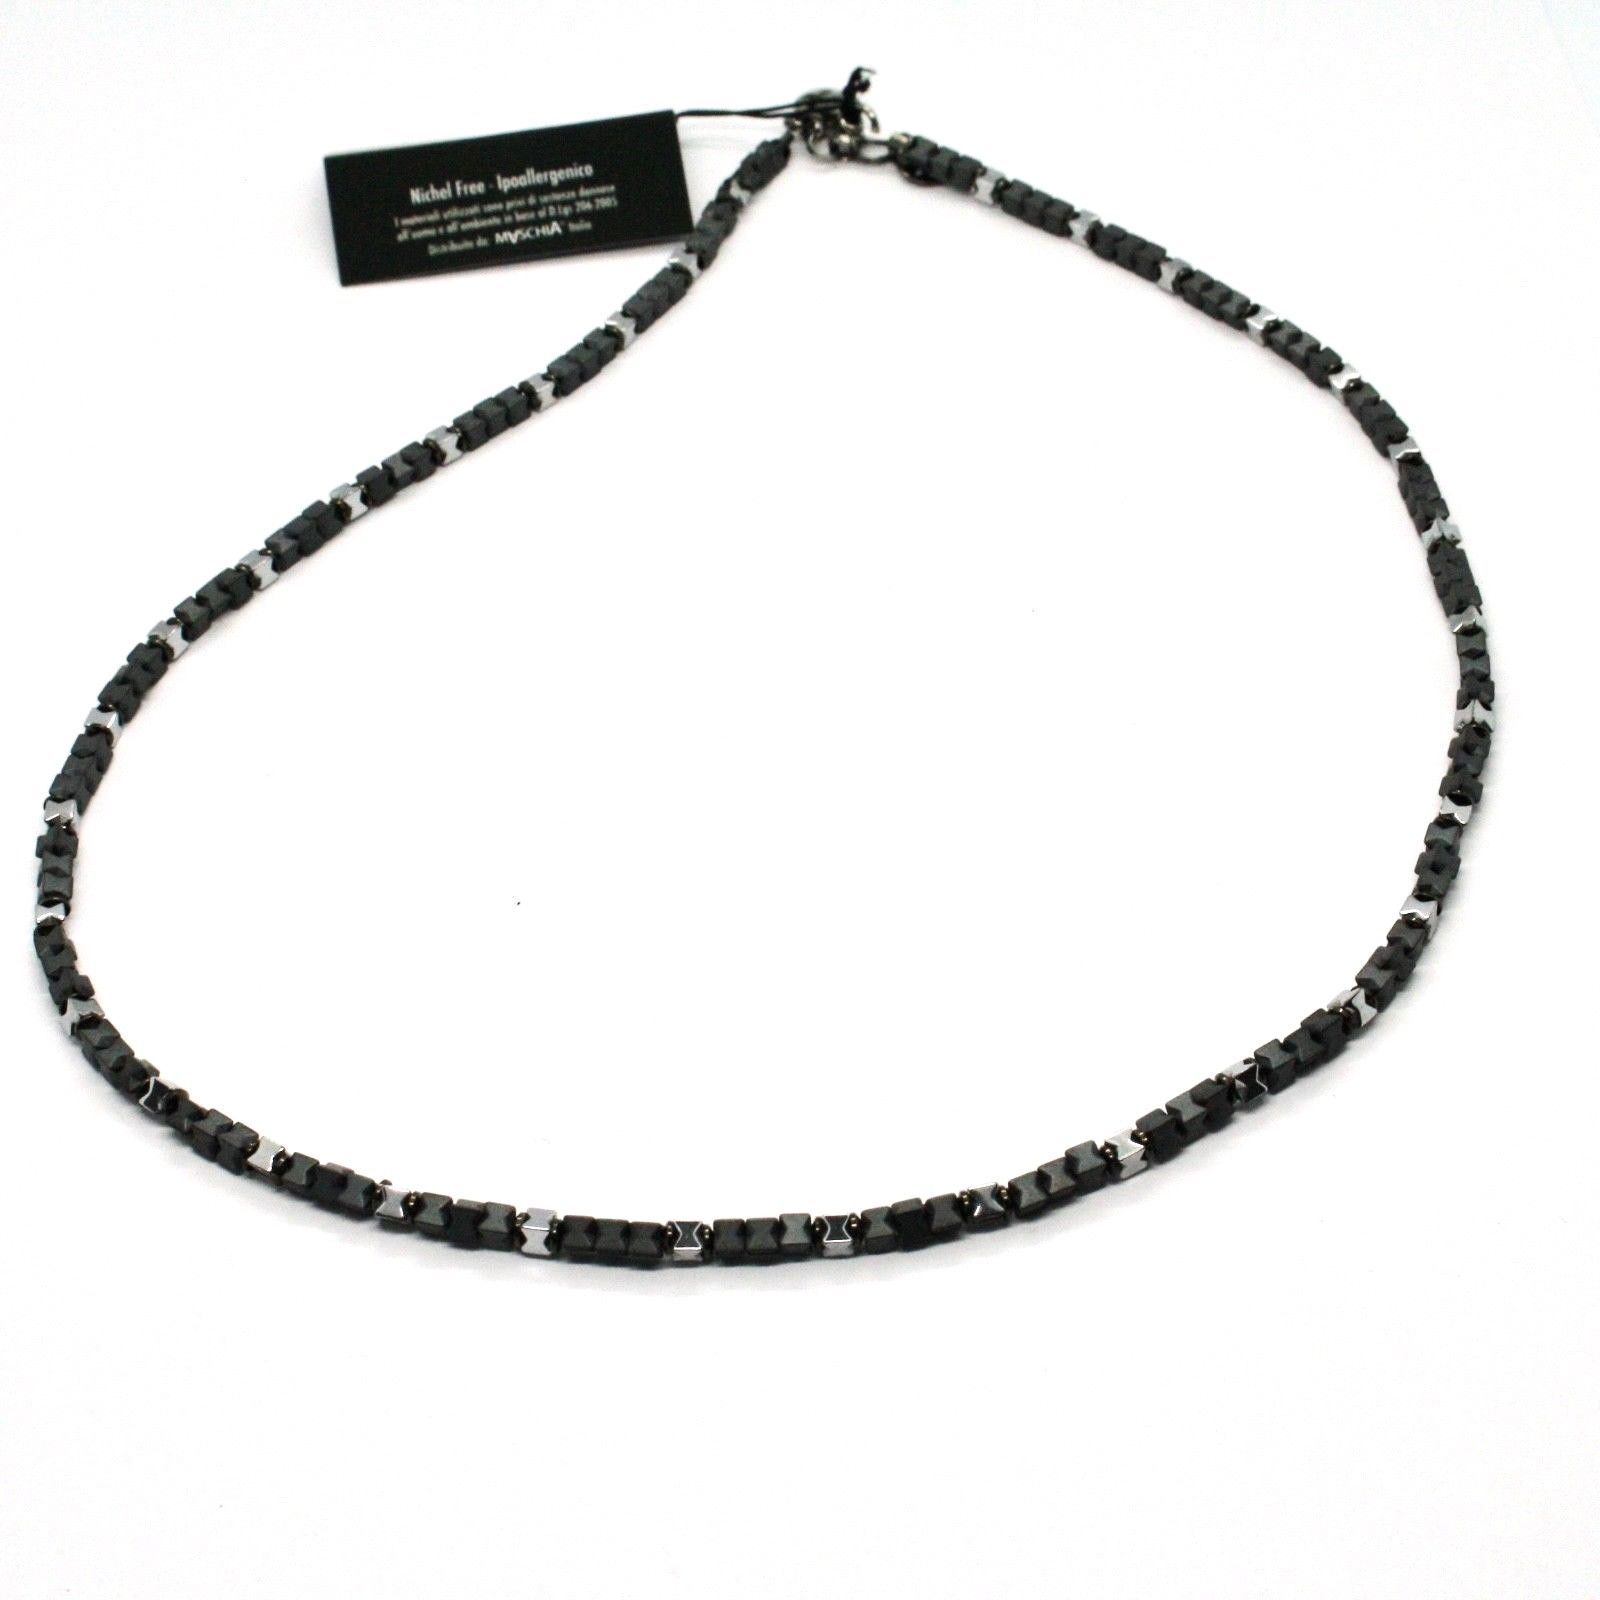 925 COLLIER EN ARGENT STERLING BRUNI AVEC HÉMATITE BRILLANTE MADE IN ITALY BY